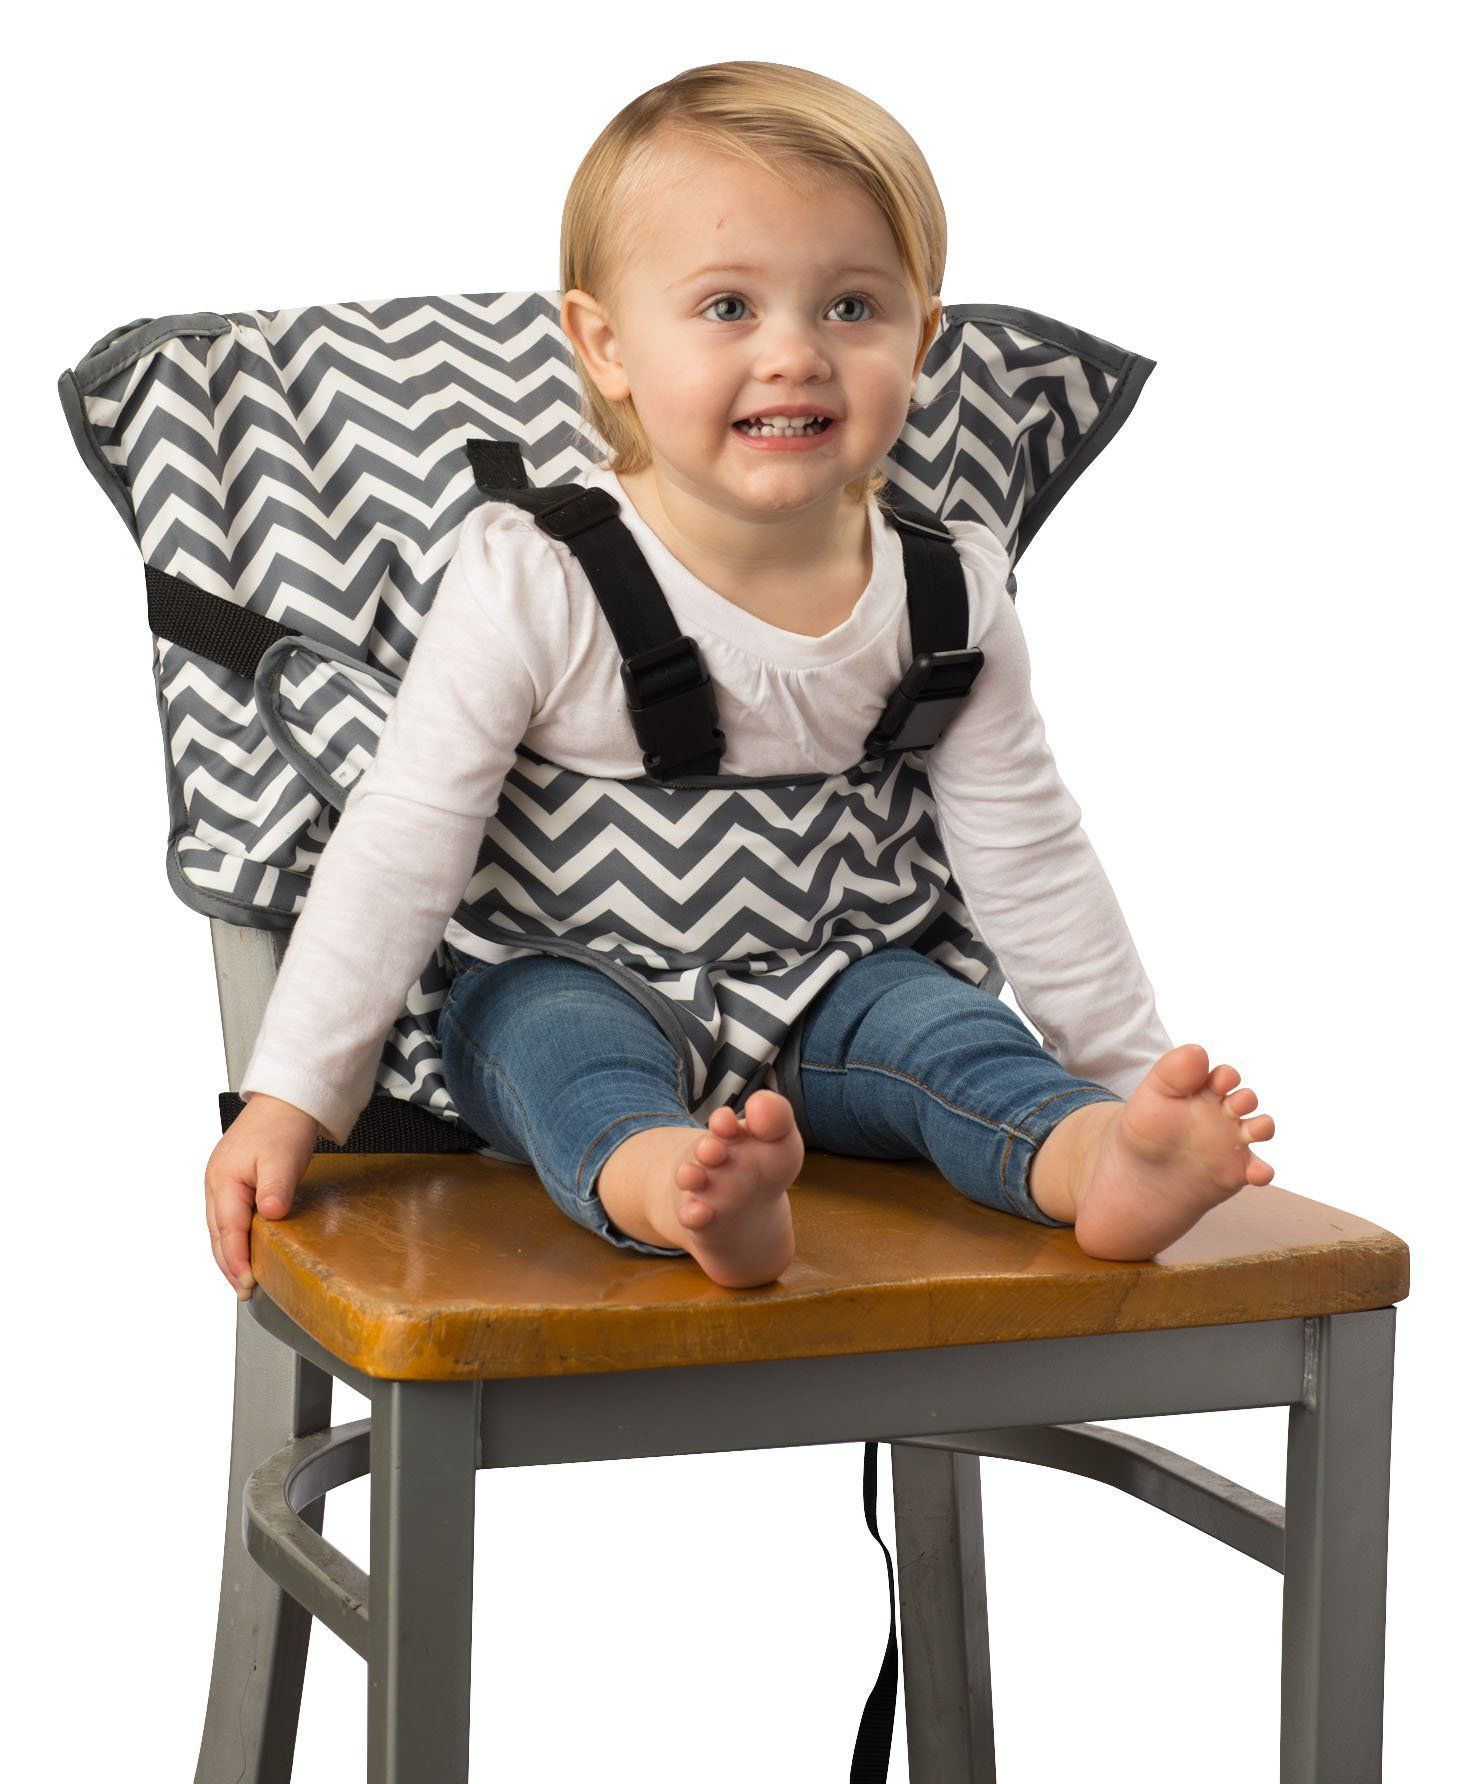 Cozy Cover Easy Seat Portable Travel High Chair and